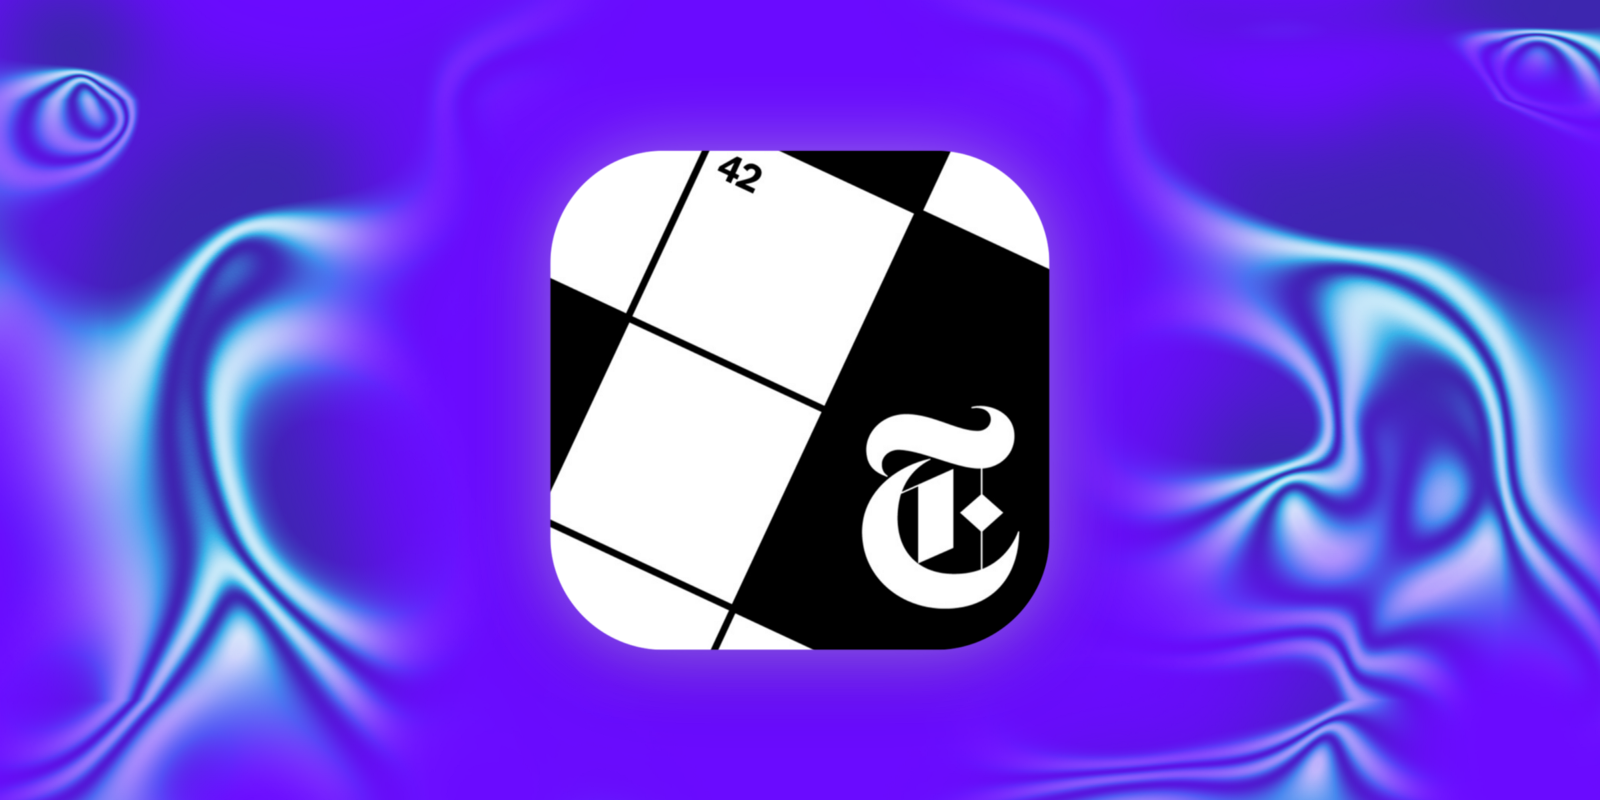 The 'New York Times' Crossword App Was a Friend When I Needed One